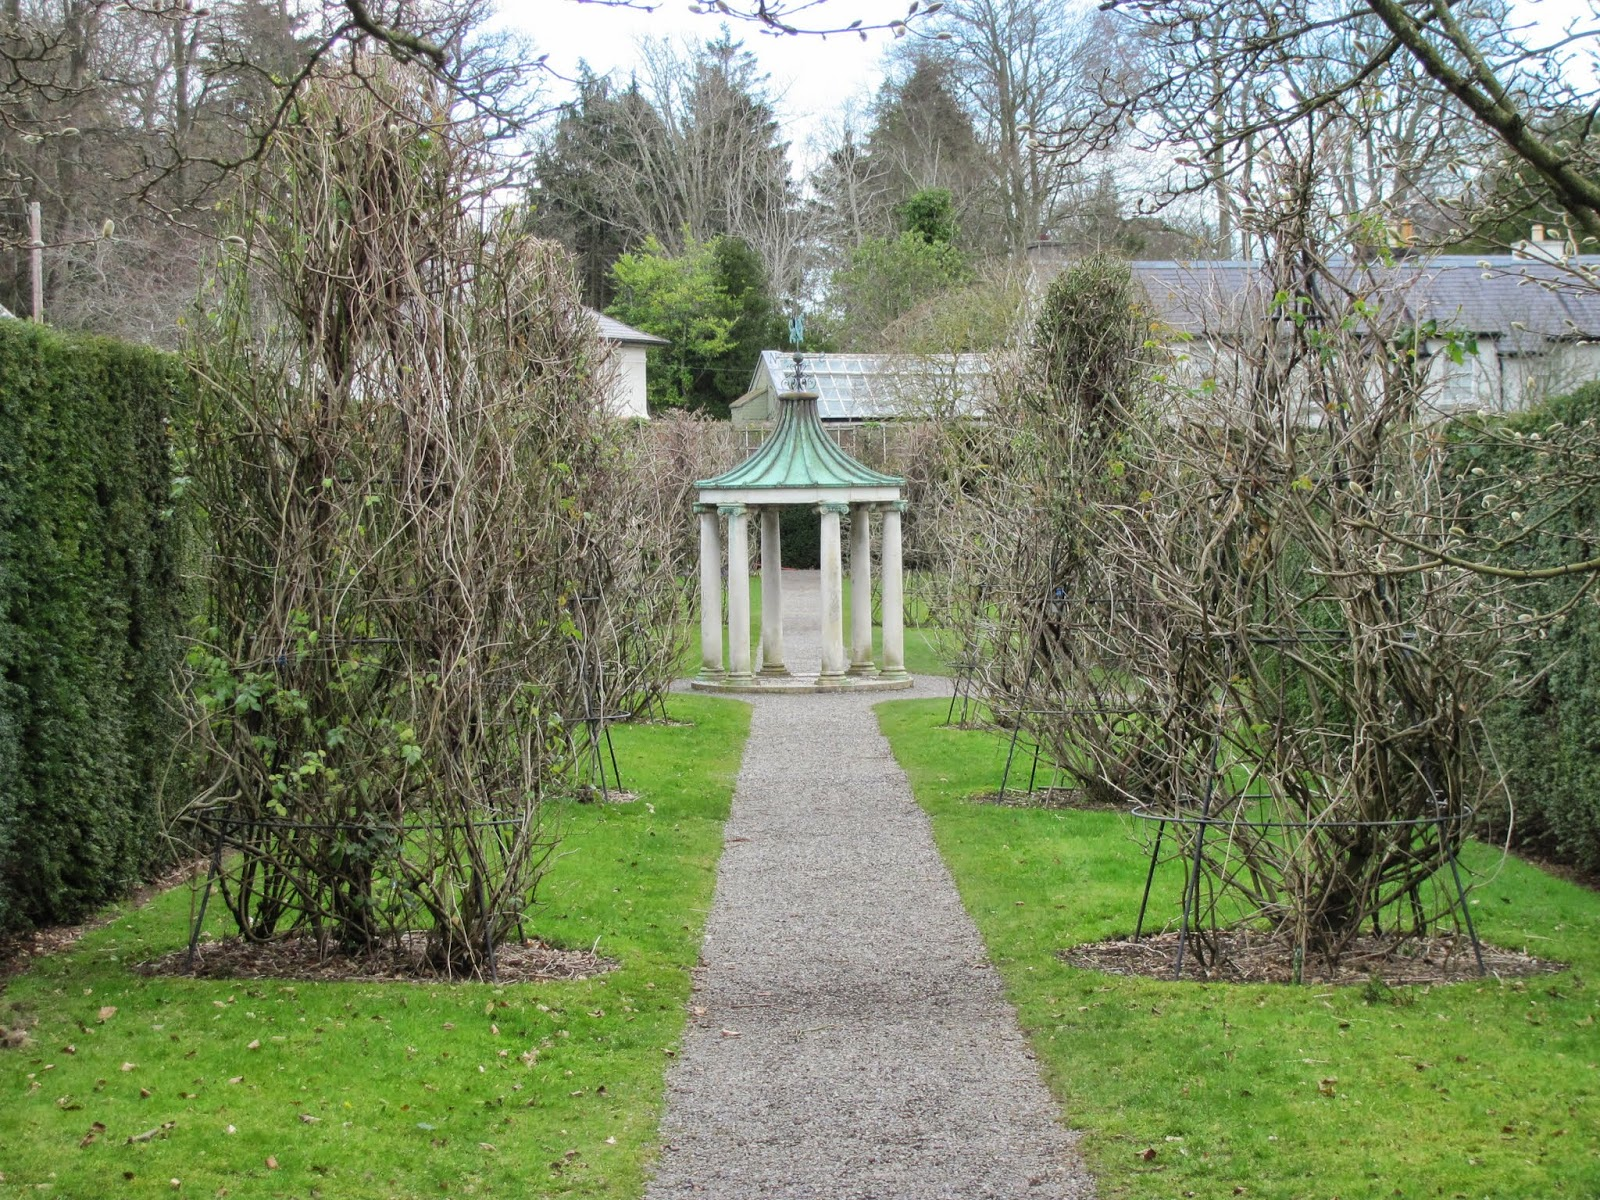 Those Victorians Loved them some Temples - Farmleigh